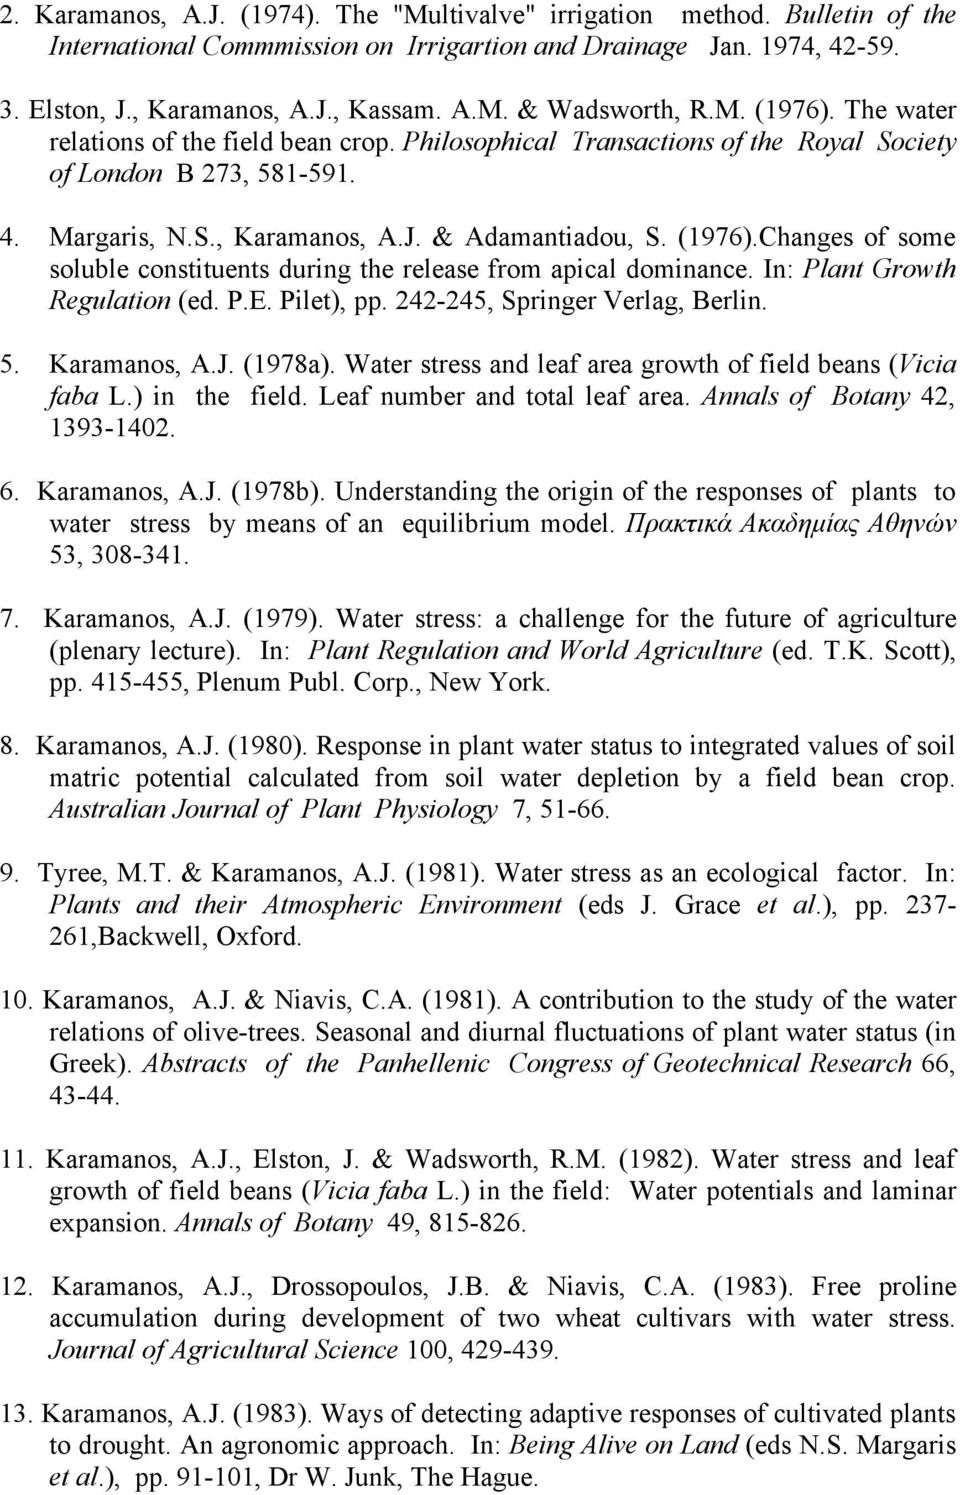 In: Plant Growth Regulation (ed. P.E. Pilet), pp. 242-245, Springer Verlag, Berlin. 5. Karamanos, A.J. (1978a). Water stress and leaf area growth of field beans (Vicia faba L.) in the field.